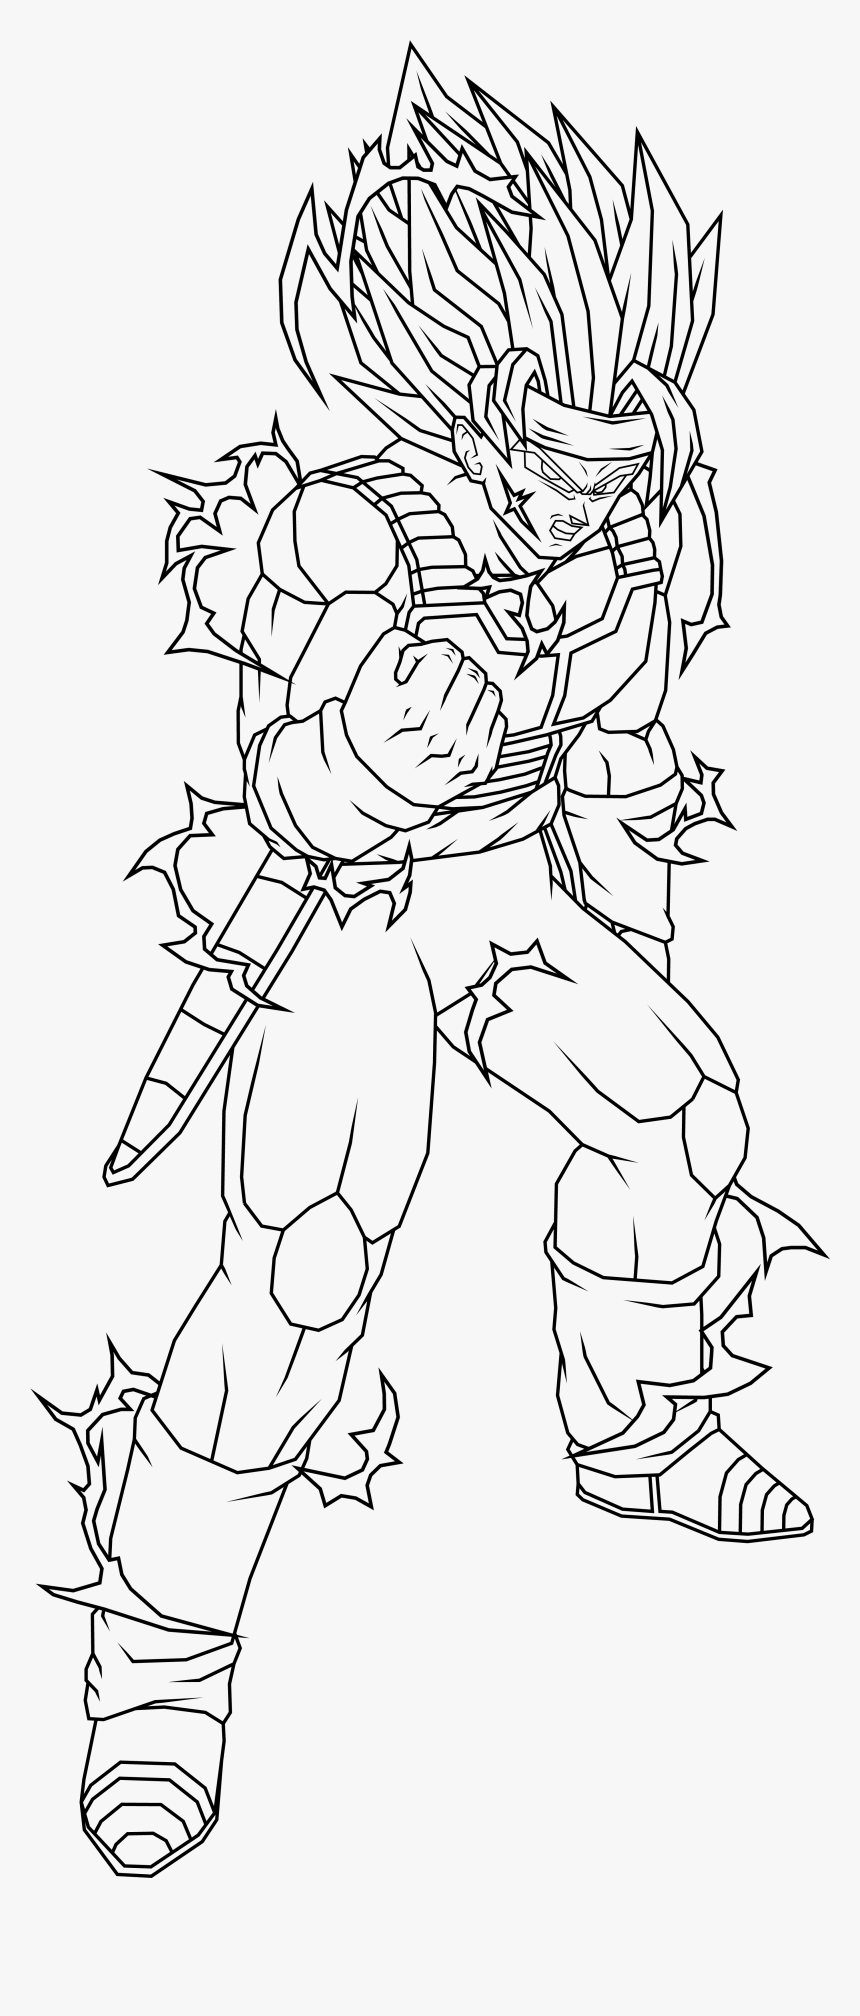 Bardock Coloring Pages 141 Dragon Ball Z Bardock Coloring Pages